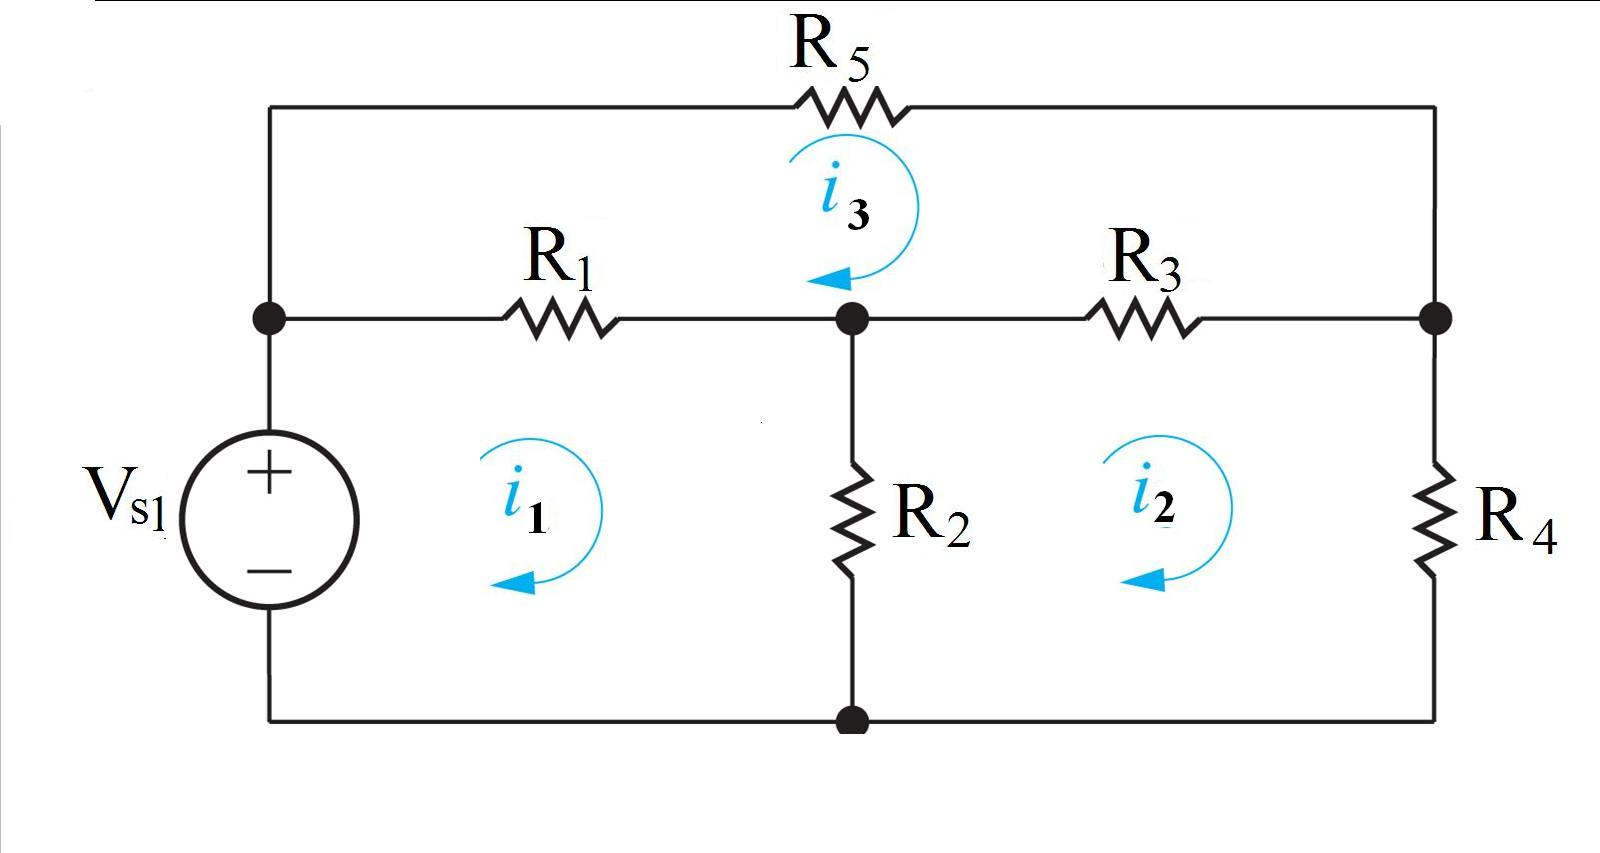 In the circuit, Vs1 = 90 V, R1 = 6 Ohm, R2 = 27